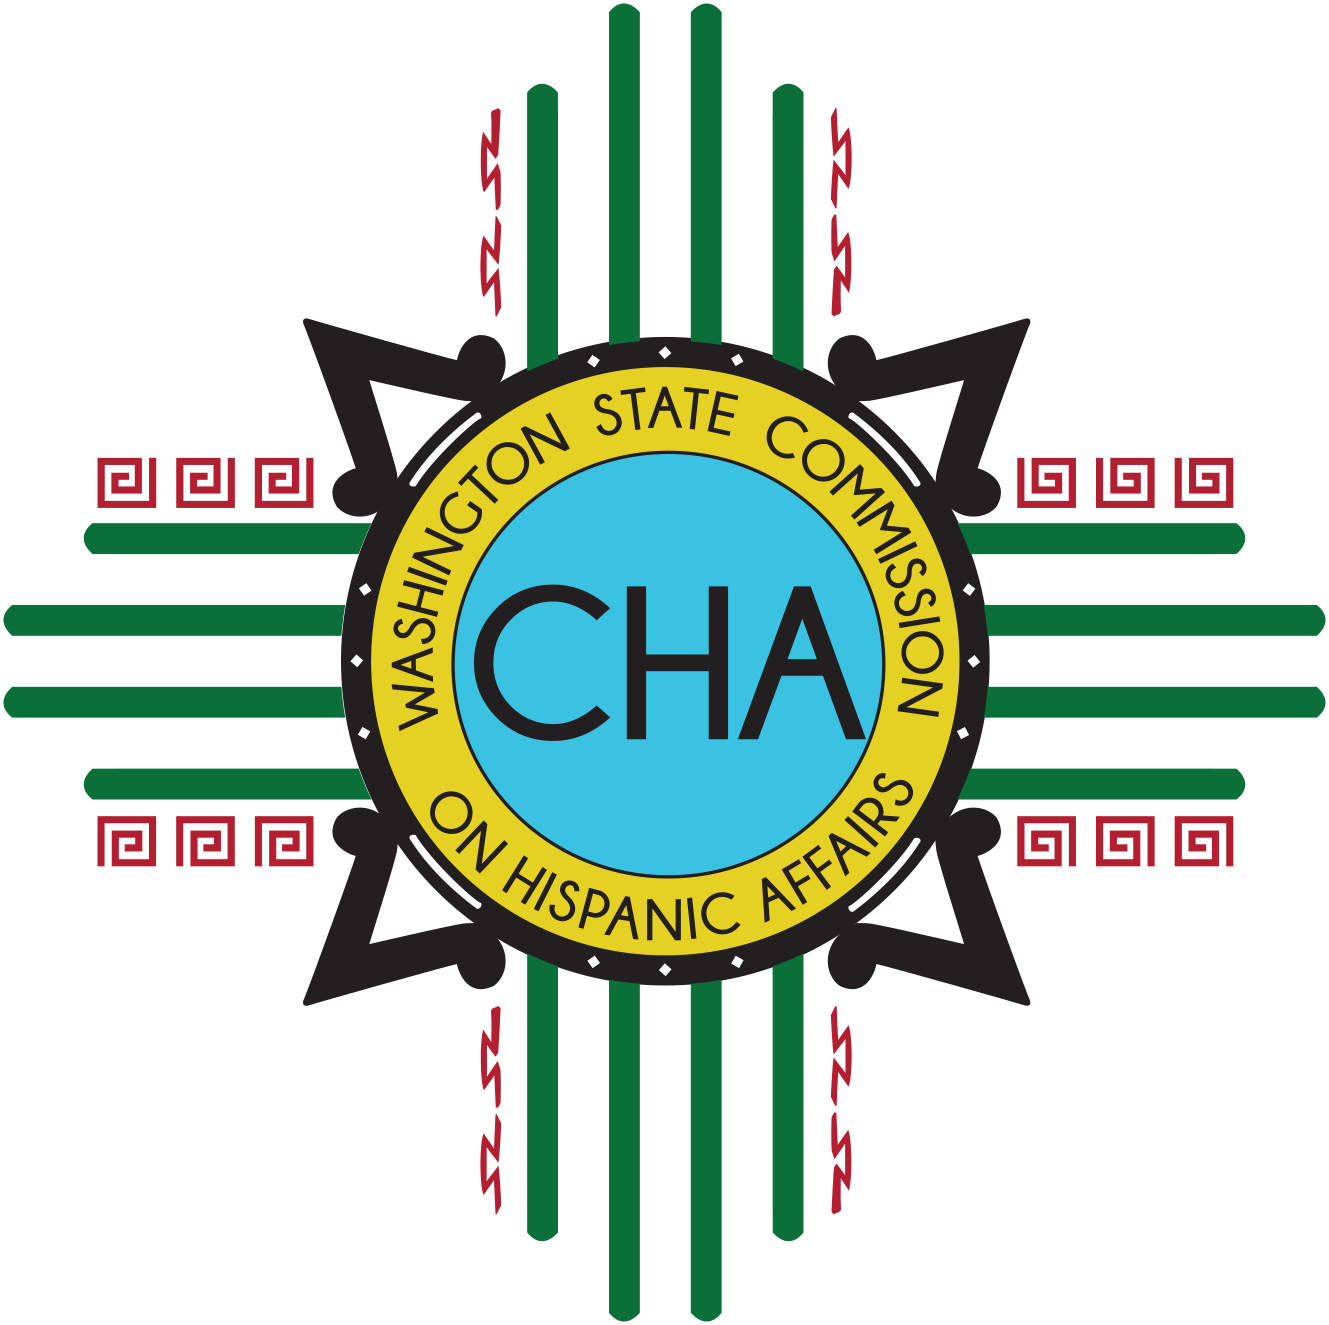 WA State Commission on Hispanic Affairs